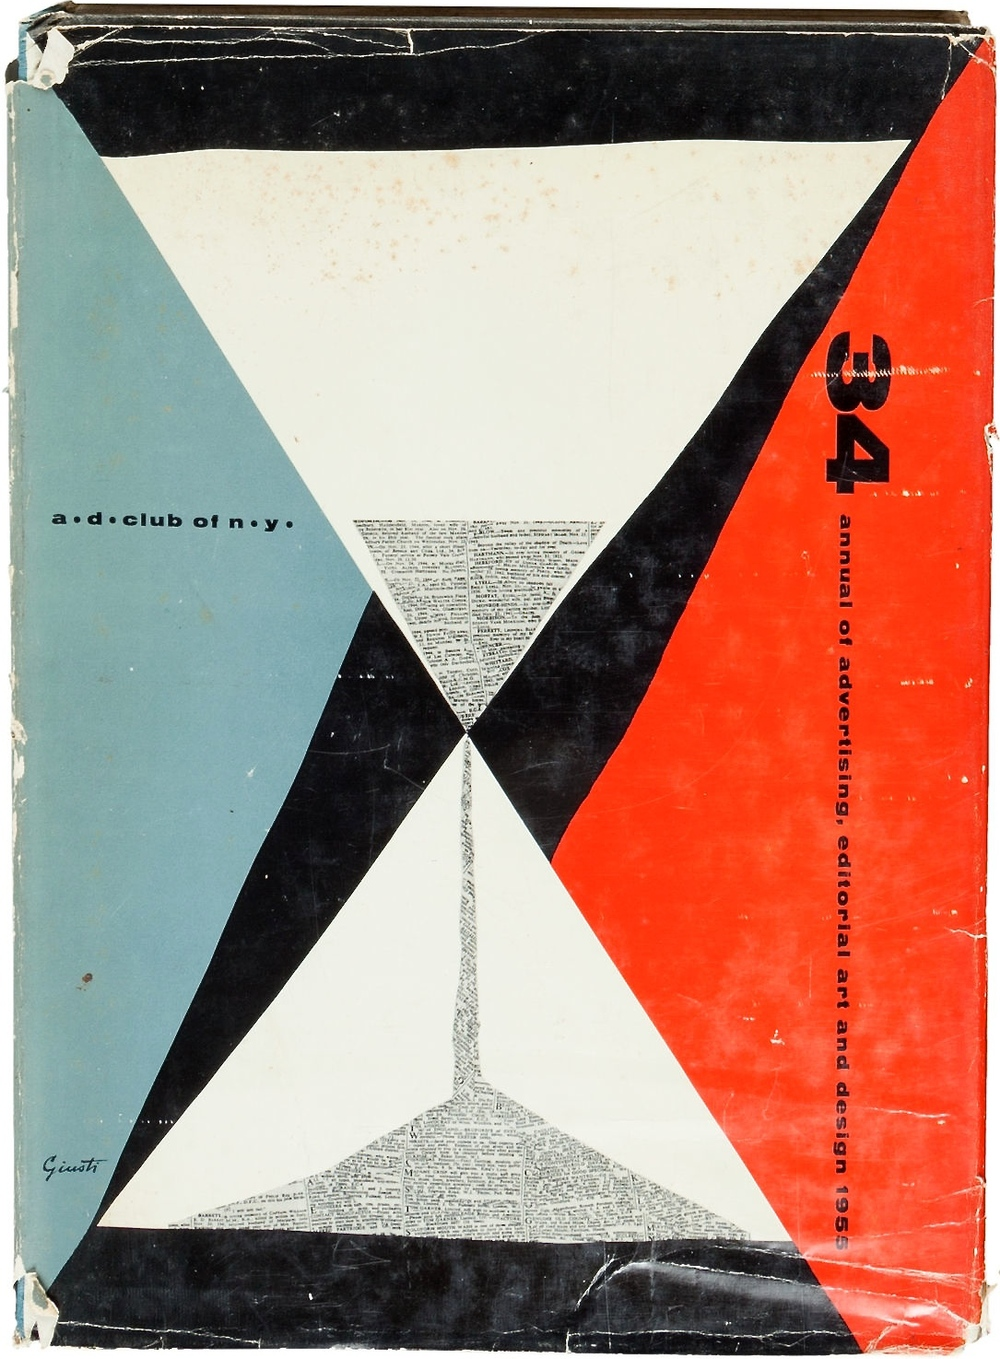 Annual of Advertising and Editorial Art 34 from the Art Directors' Club of New York. 1955. Jacket design by George Giusti.